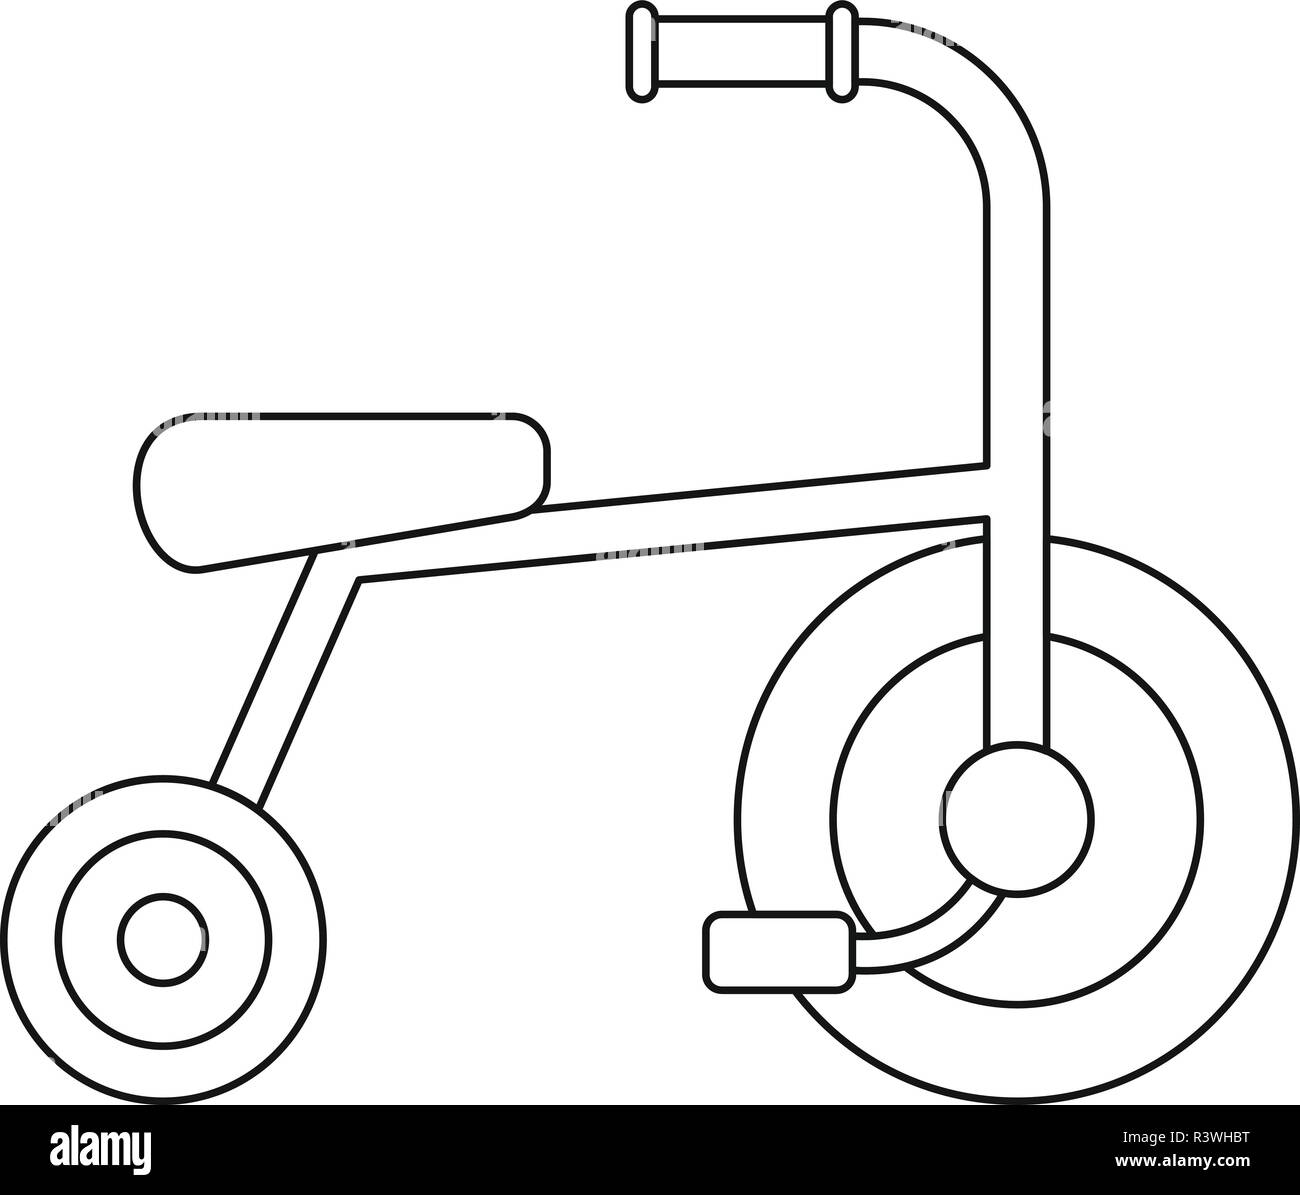 little tricycle icon outline little tricycle vector icon for web design isolated on white background R3WHBT little tricycle icon outline little tricycle vector icon for web